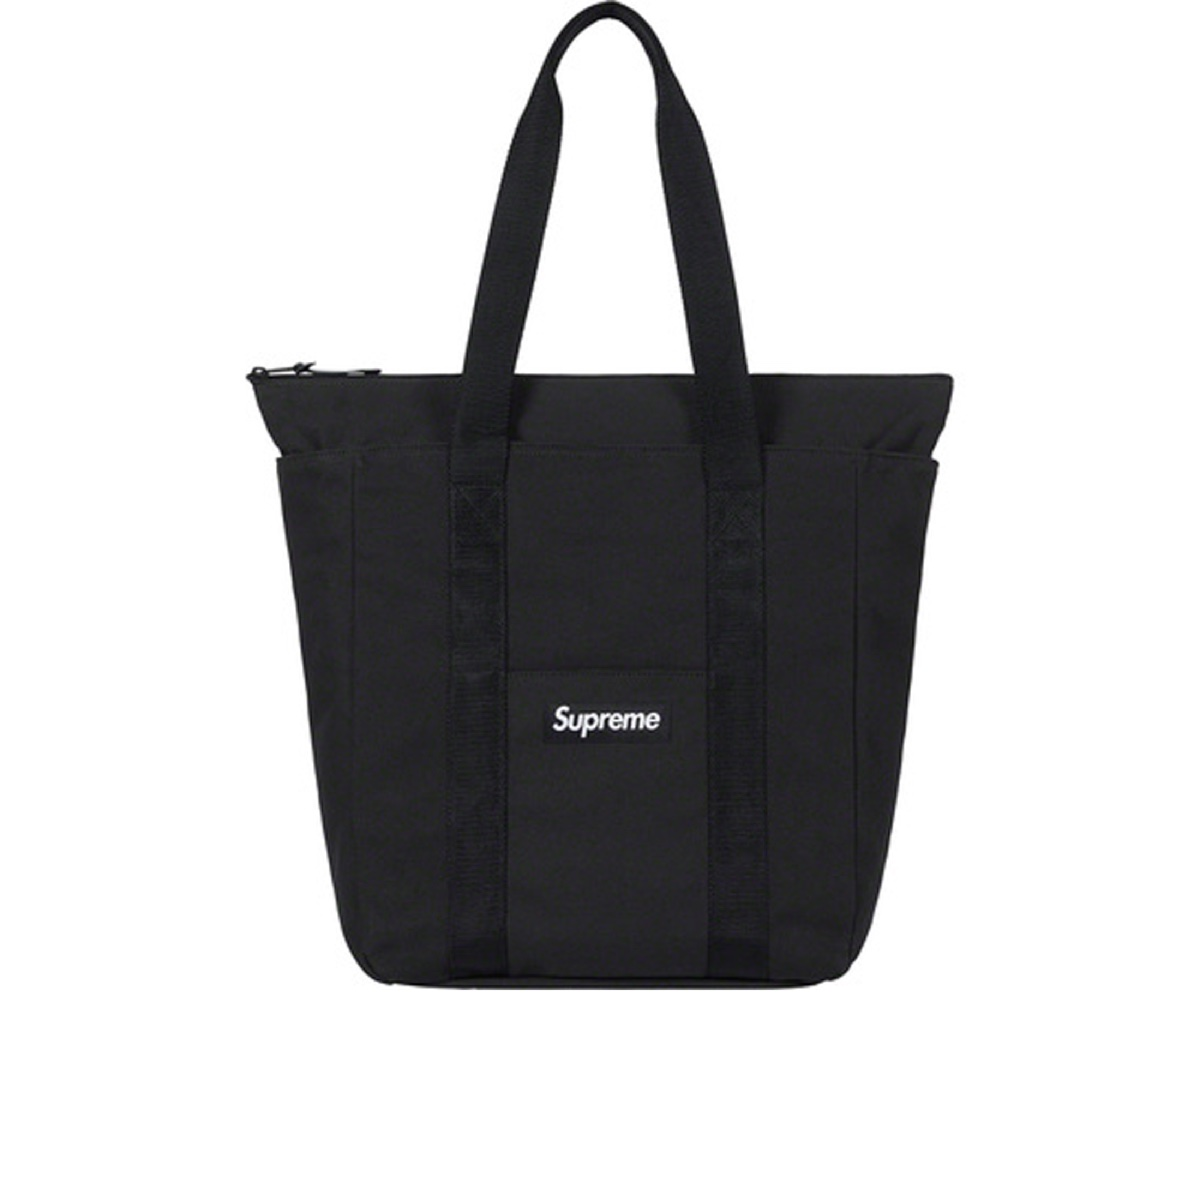 Supreme Canvas Tote Black